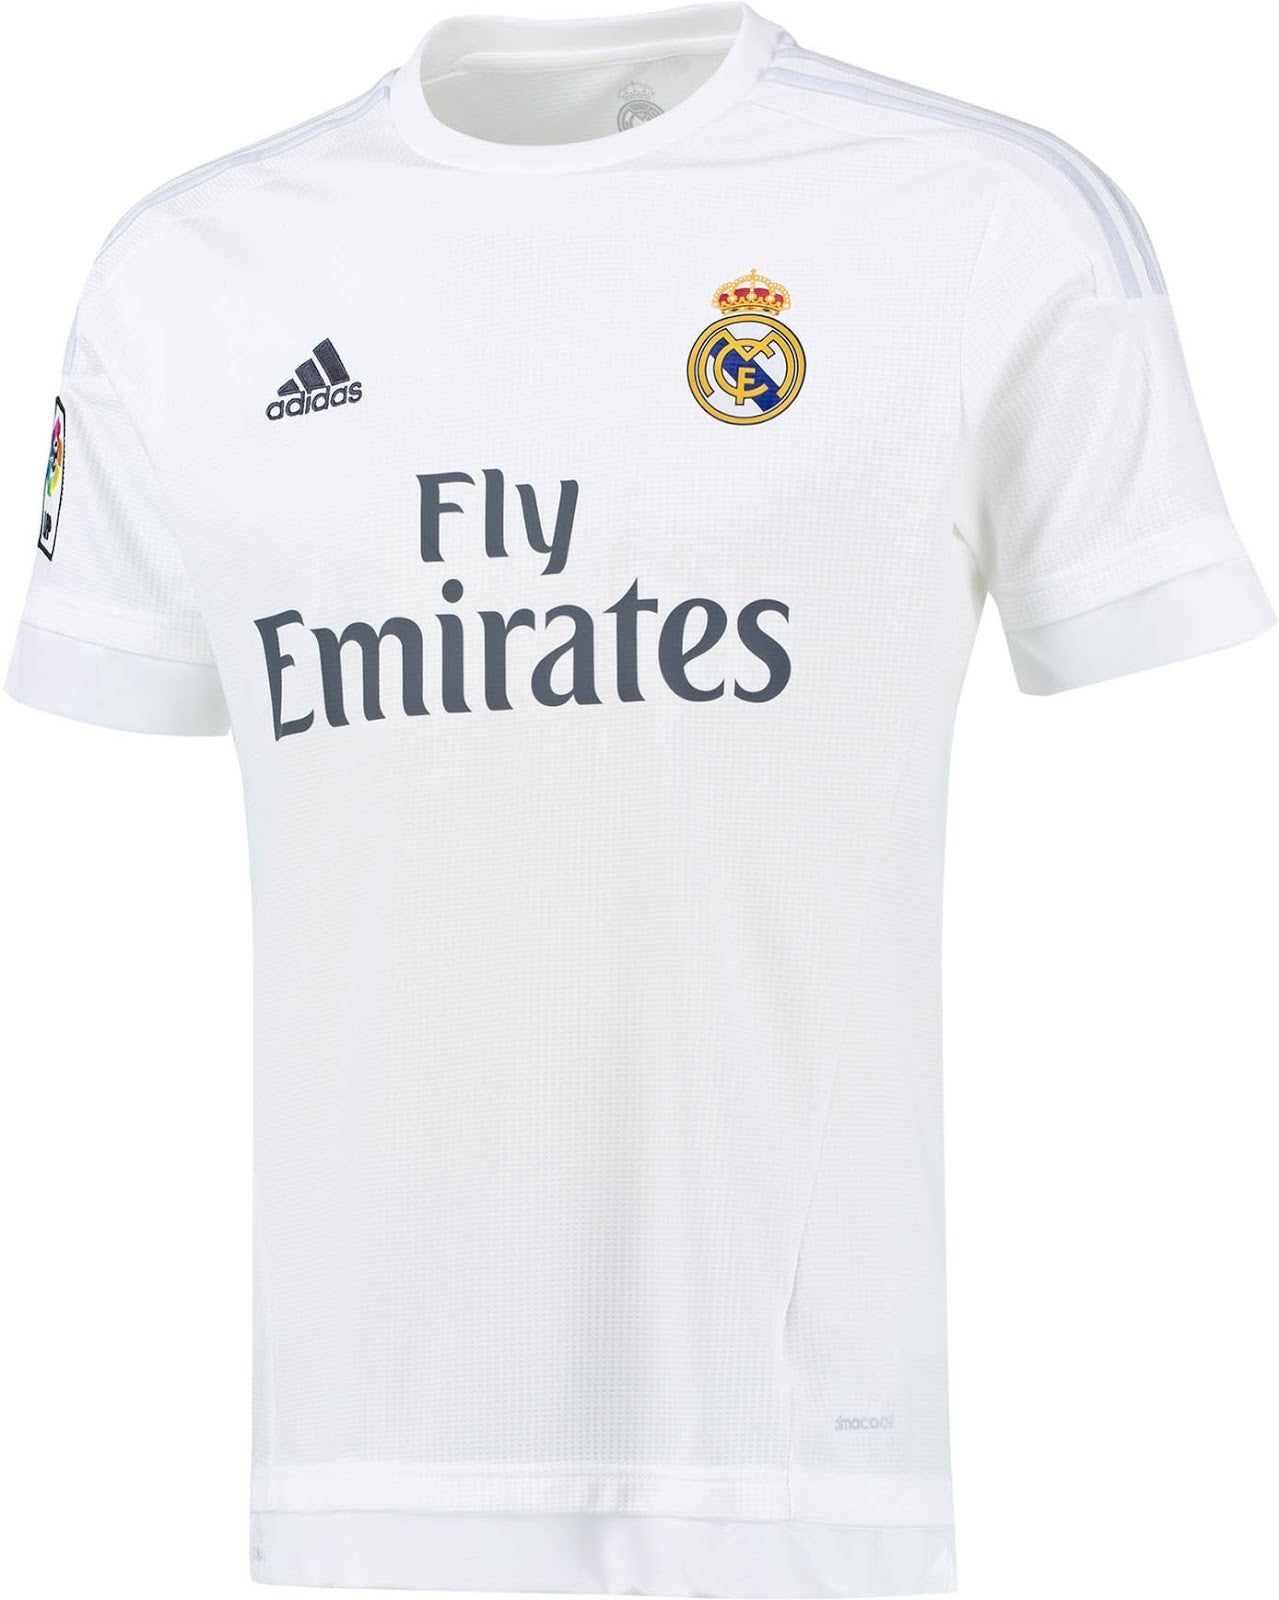 0fdfc7410 Real Madrid Jersey Home Youth and Boys Sizes 2015 2016